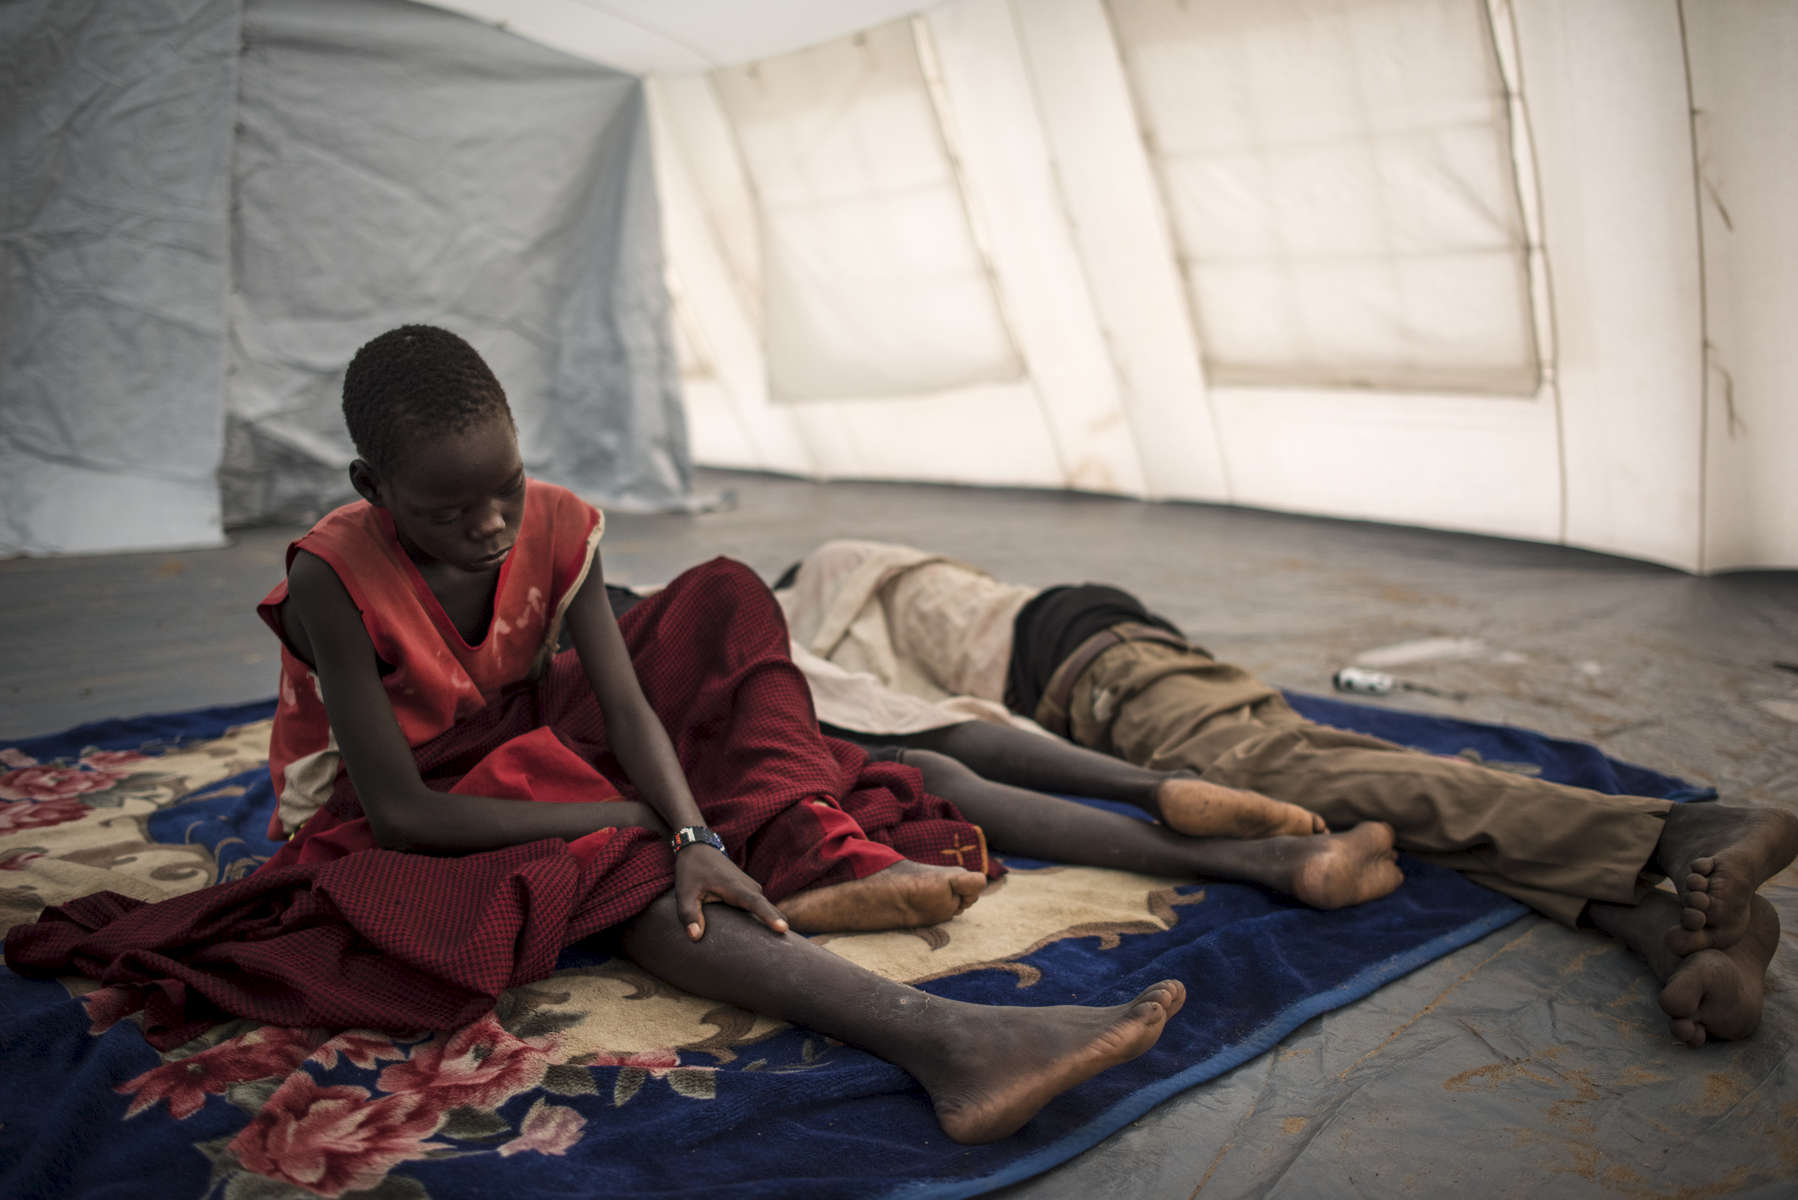 Chuol, 9, from southern Unity State, wakes up in a UNICEF tent school with other internally displaced children in Unity State, South Sudan, September 11, 2015.   Chuol was chased out of his own village with his grandmother and sister several months ago when it  was attacked, and his father and grandfather were burned alive. He, his grandmother, and sister fled to this area, where they are living on the ground of a host family. in South Sudan, September 11, 2015. Thousands of civilians have been killed, and others displaced since fighting between those loyal to President Salva Kiir and those loyal to opposition leader Riek Marchar began again in 2013.